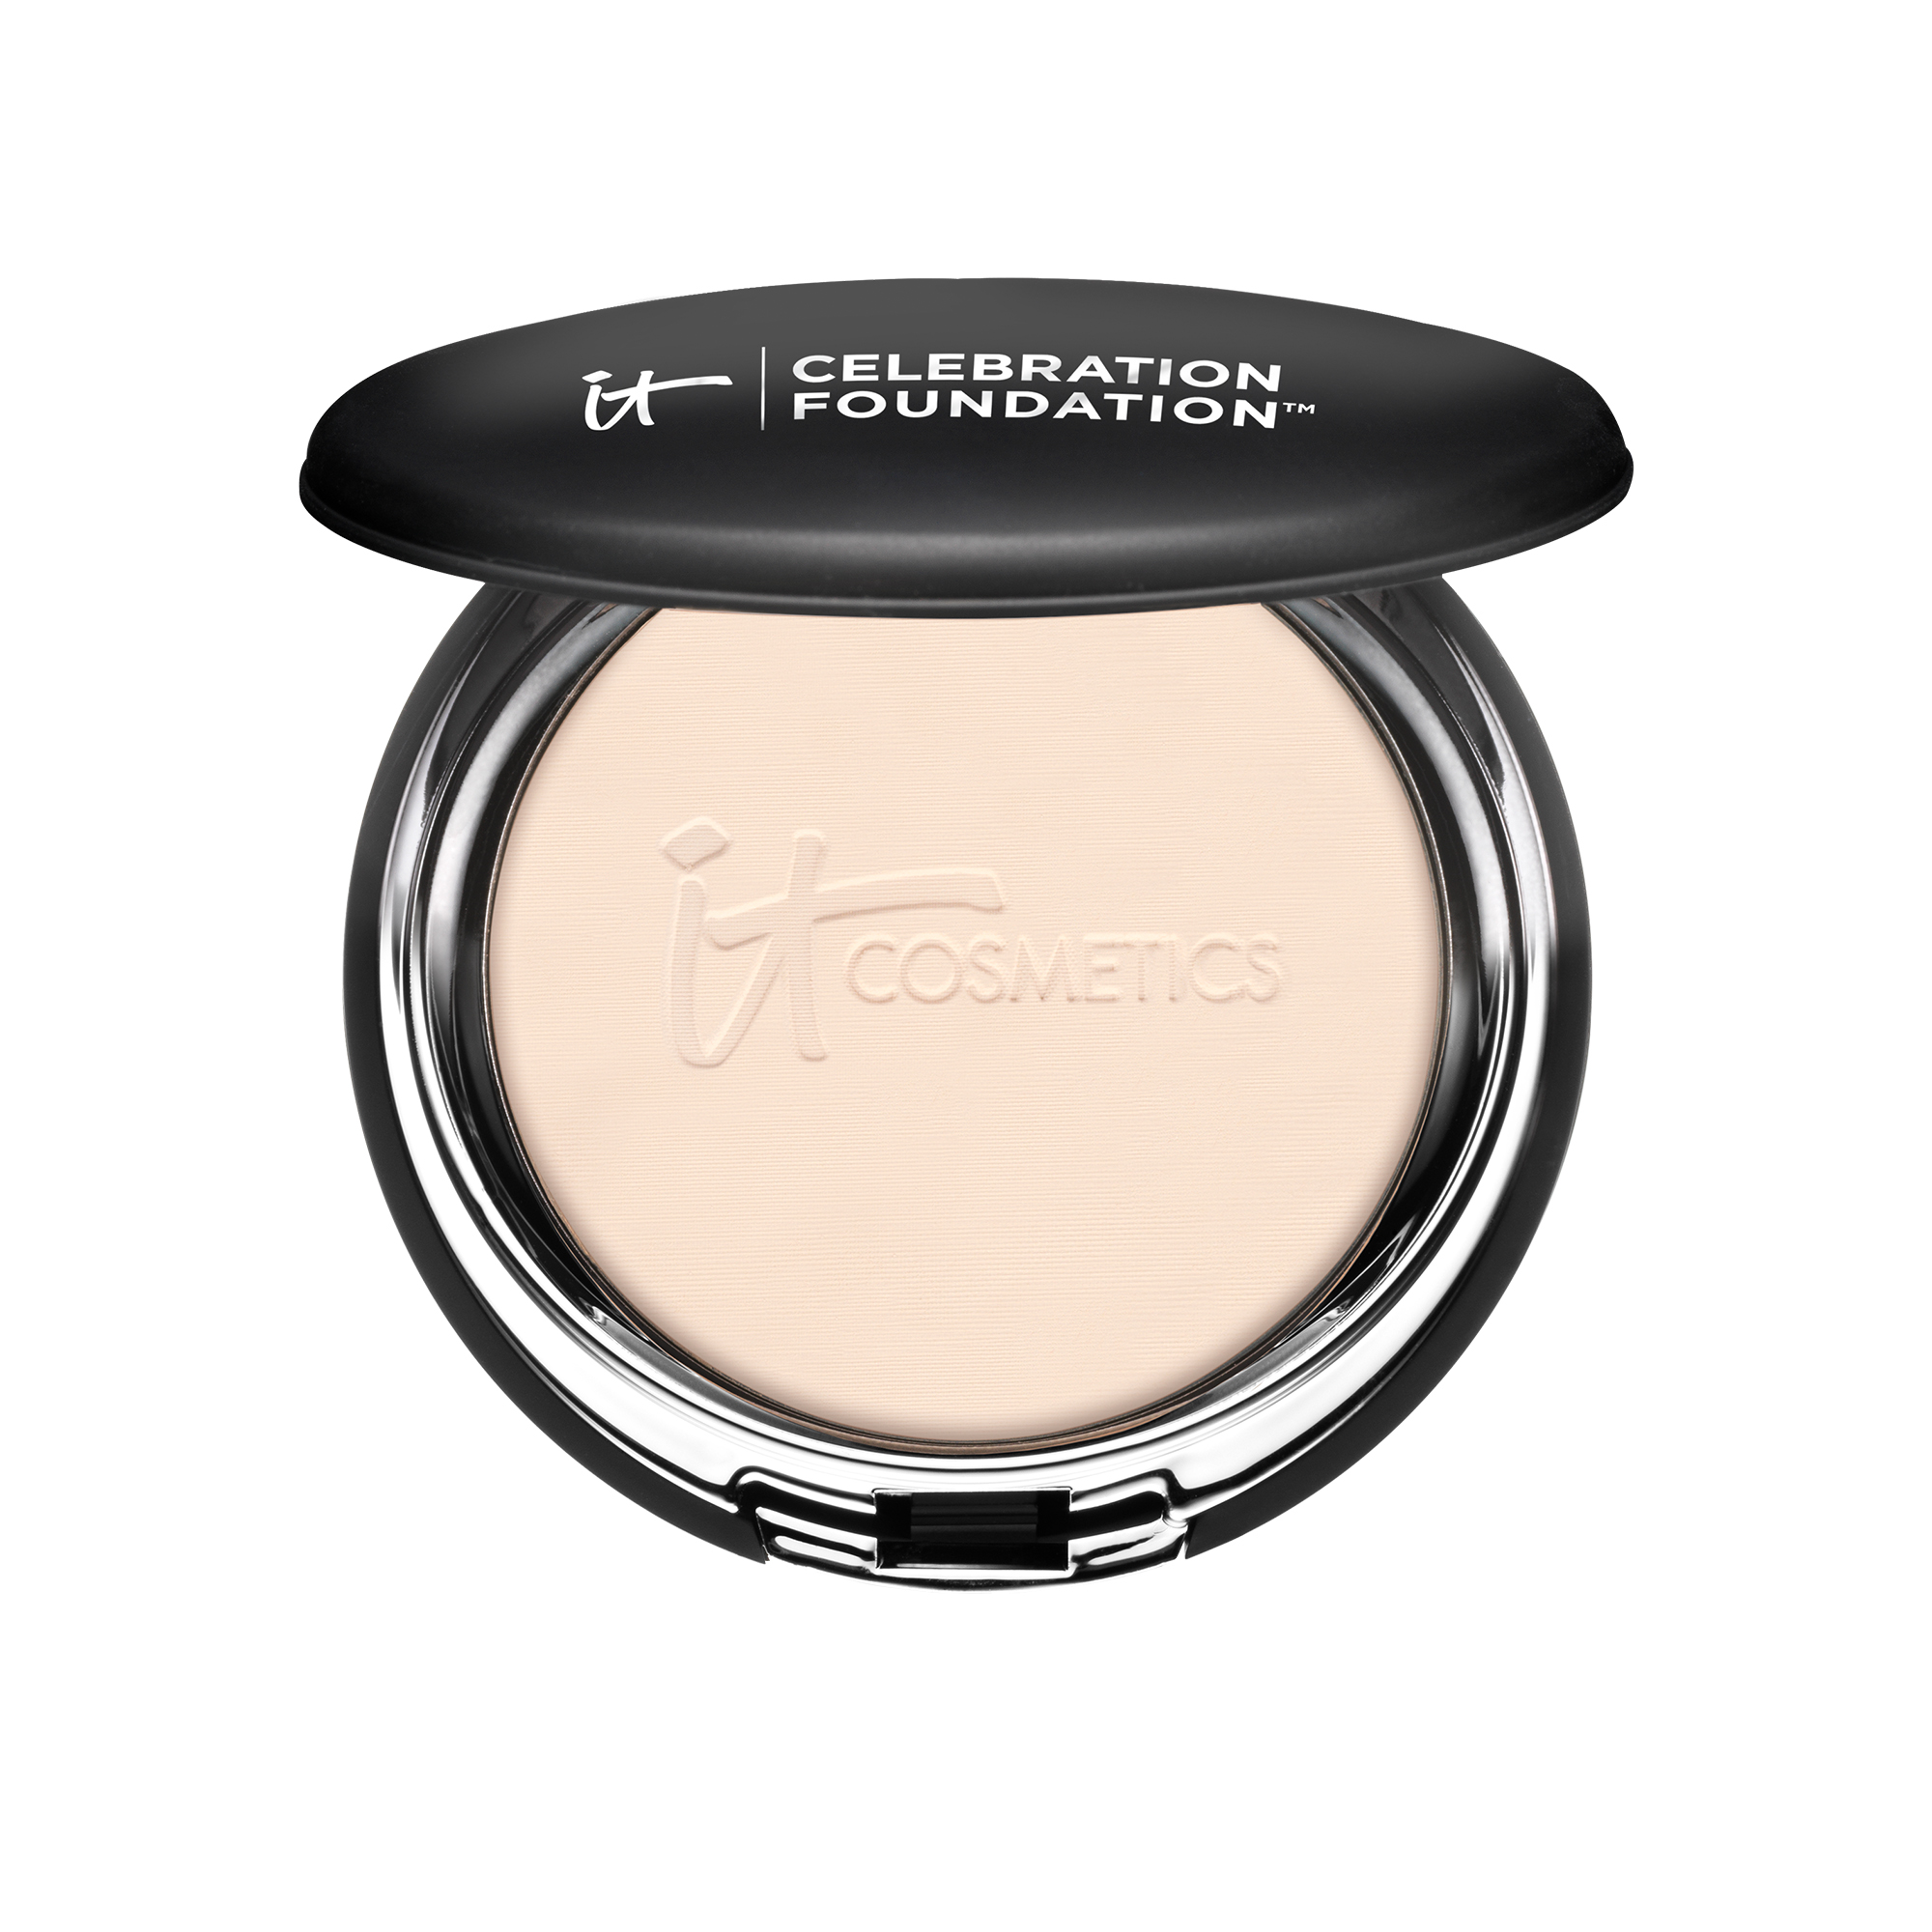 Celebration Foundation™ Powder